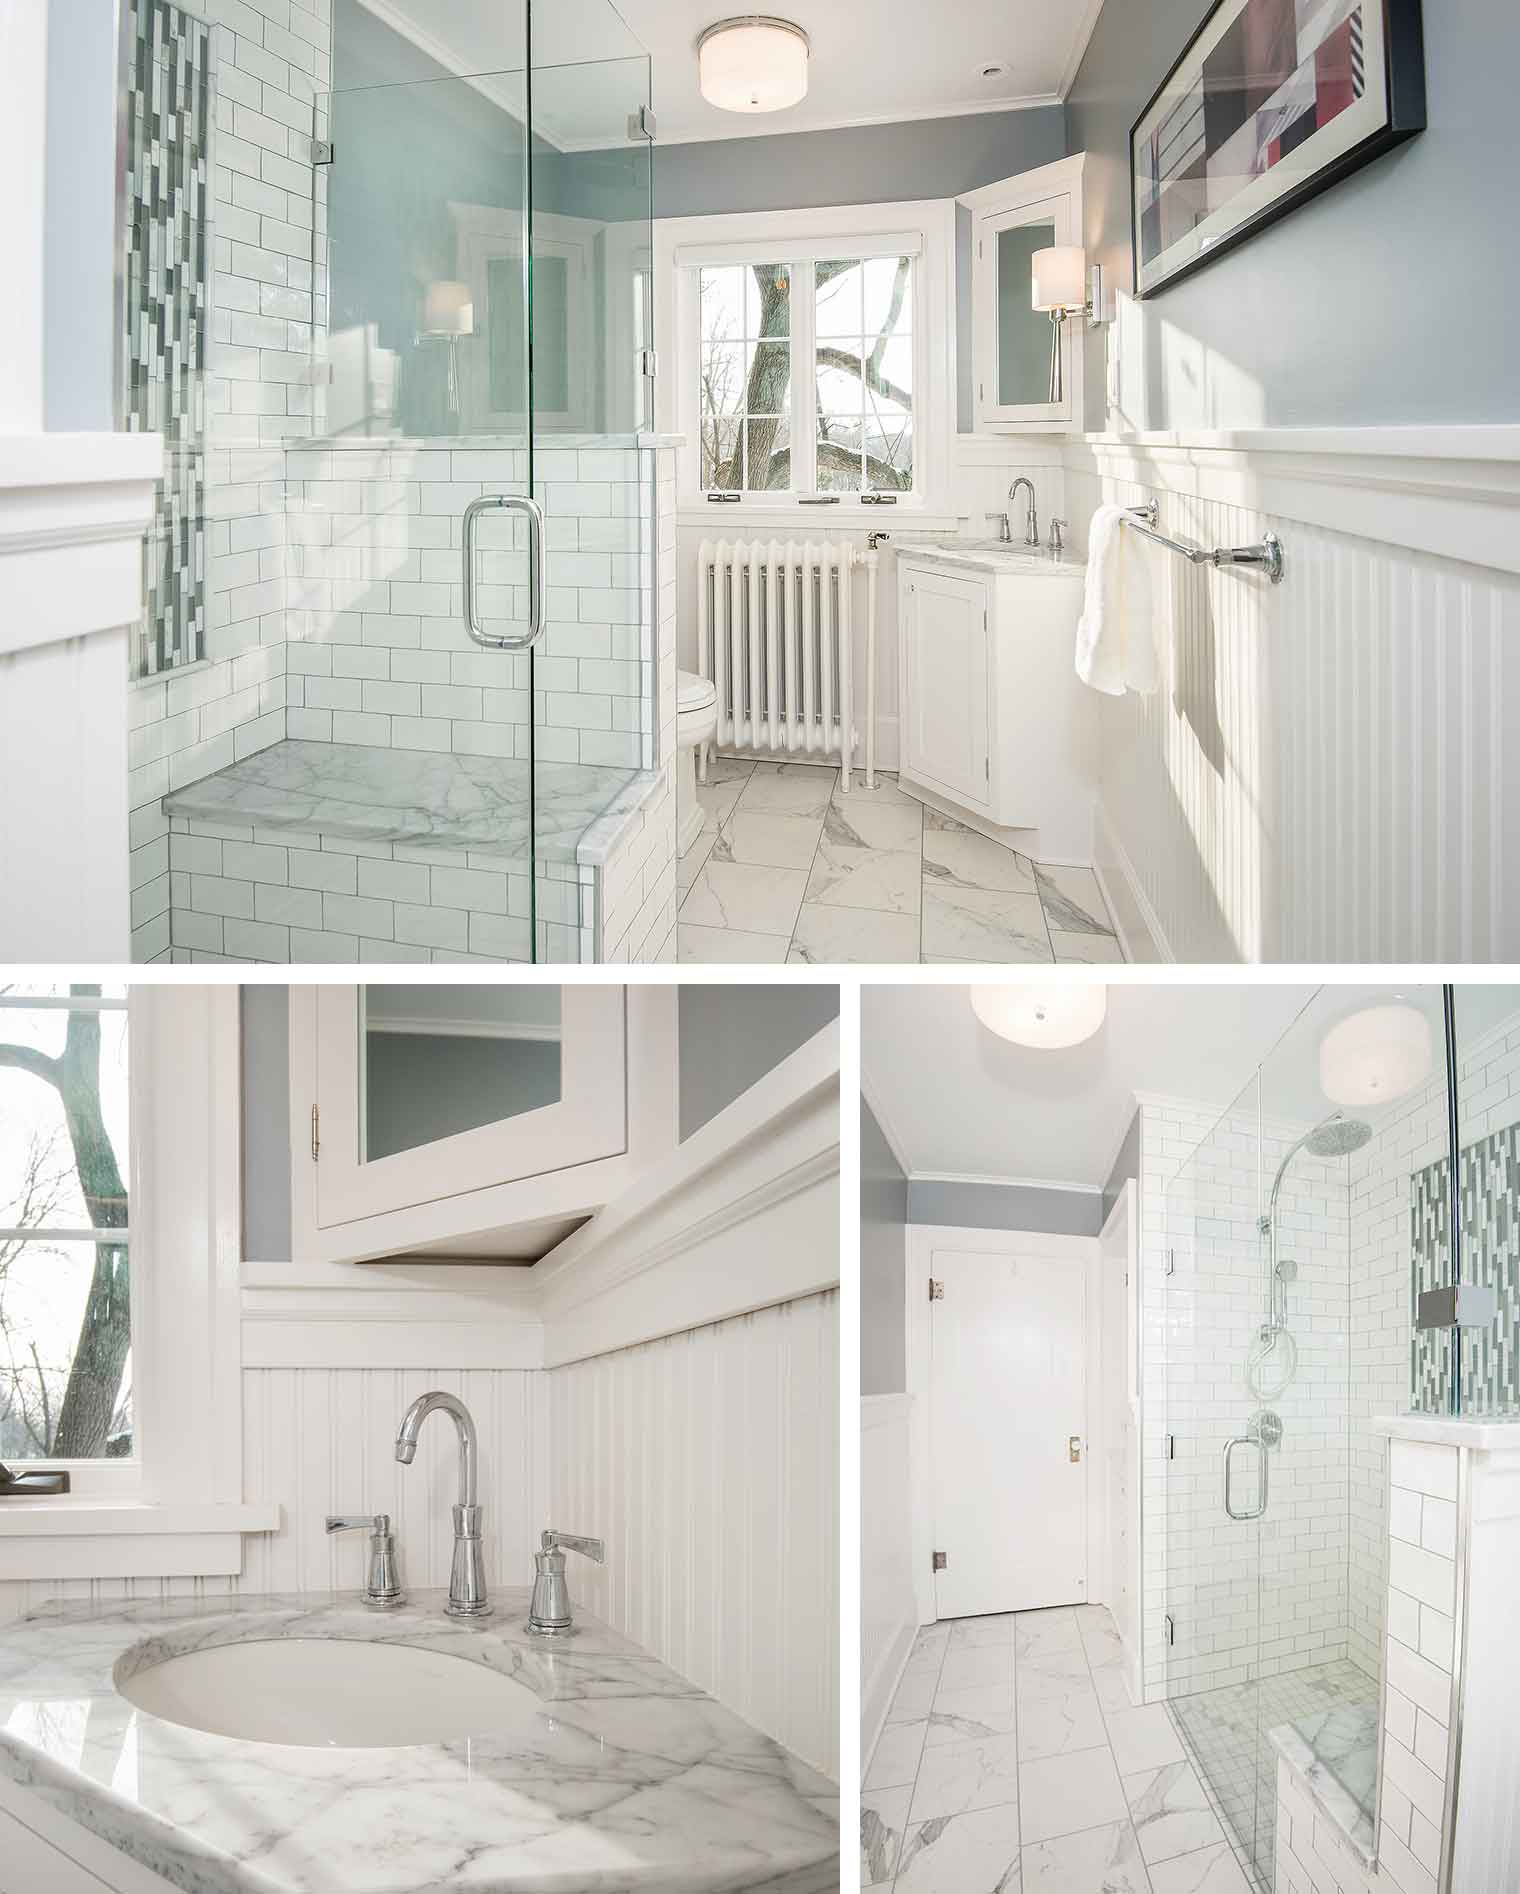 Modern Bathroom Design Used In Not Just One But Two Different Homes